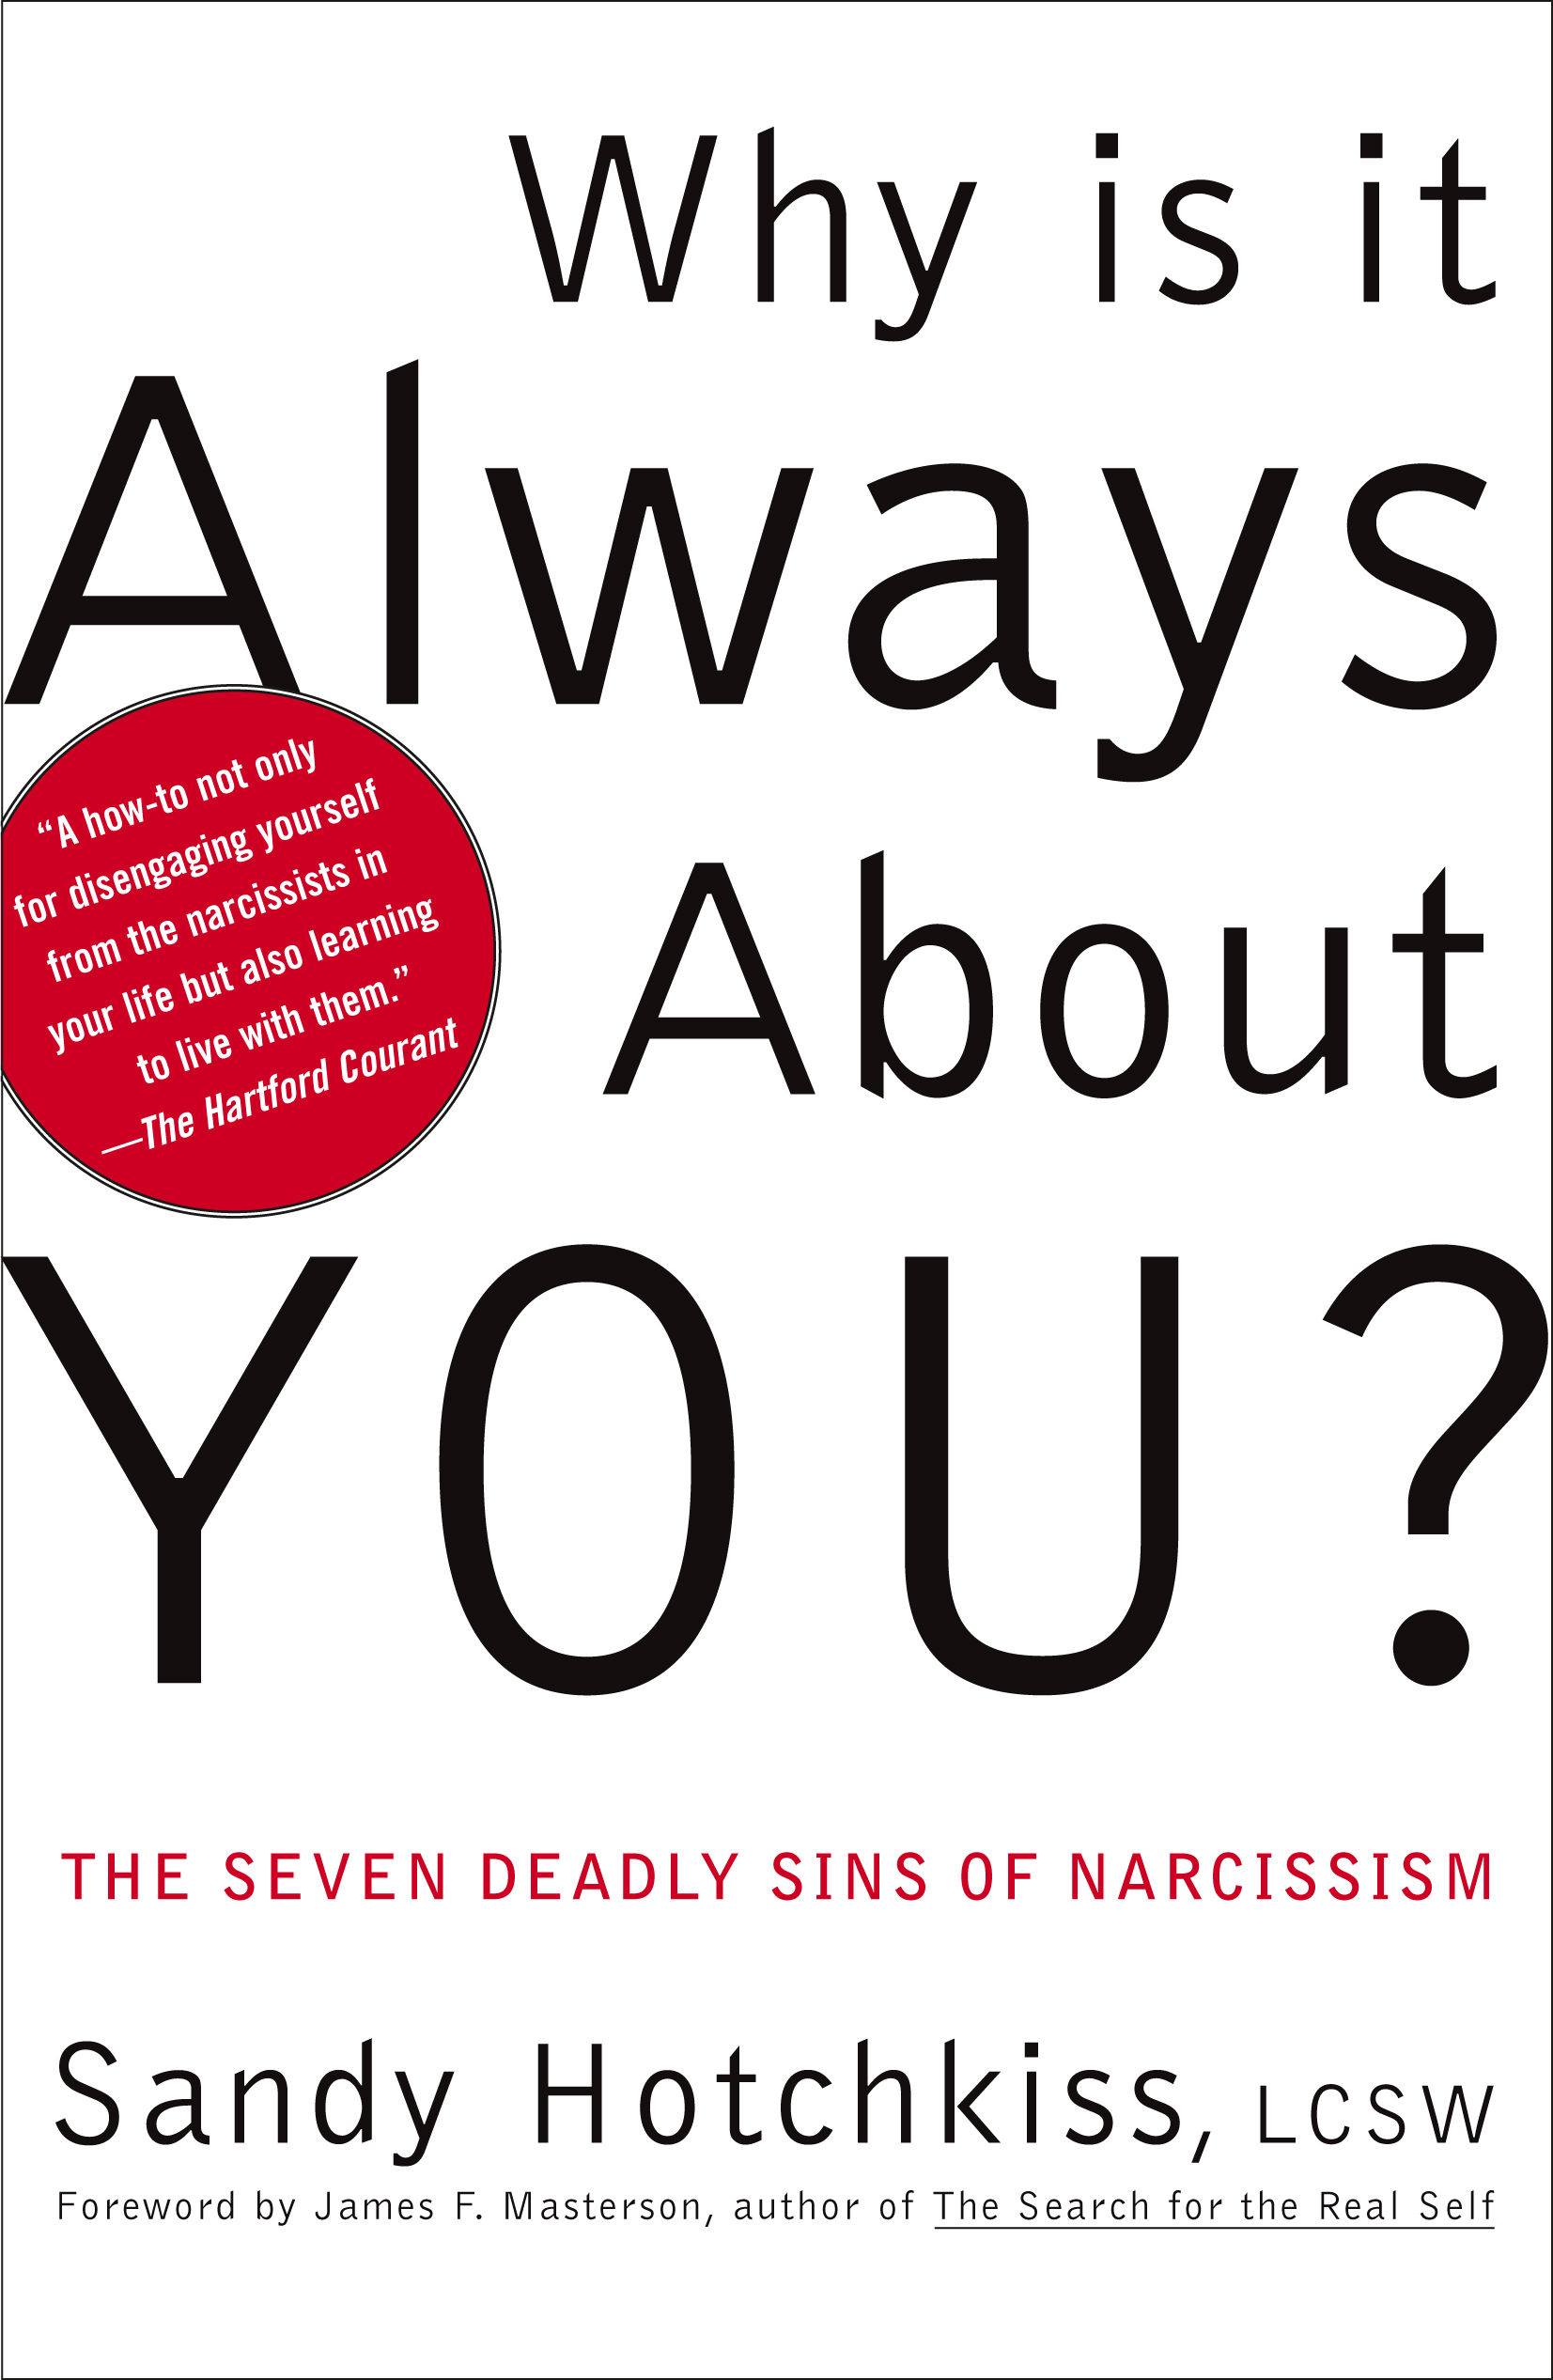 Download Why Is It Always About You The Seven Deadly Sins Of Narcissism By Sandy Hotchkiss